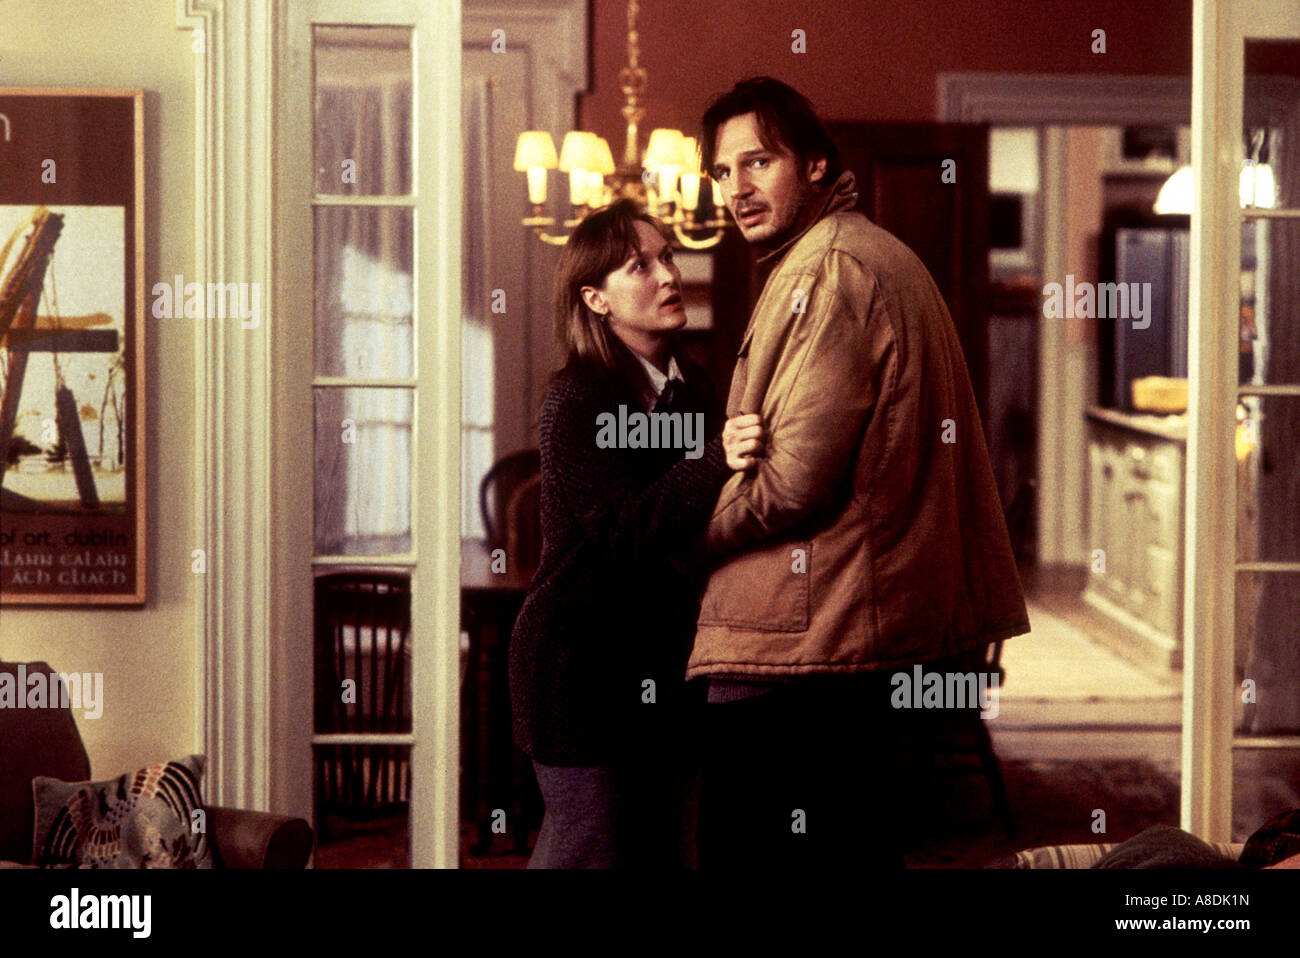 BEFORE AND AFTER - 1996 Buena Vista film with Meryl Streep and Liam Neeson - Stock Image